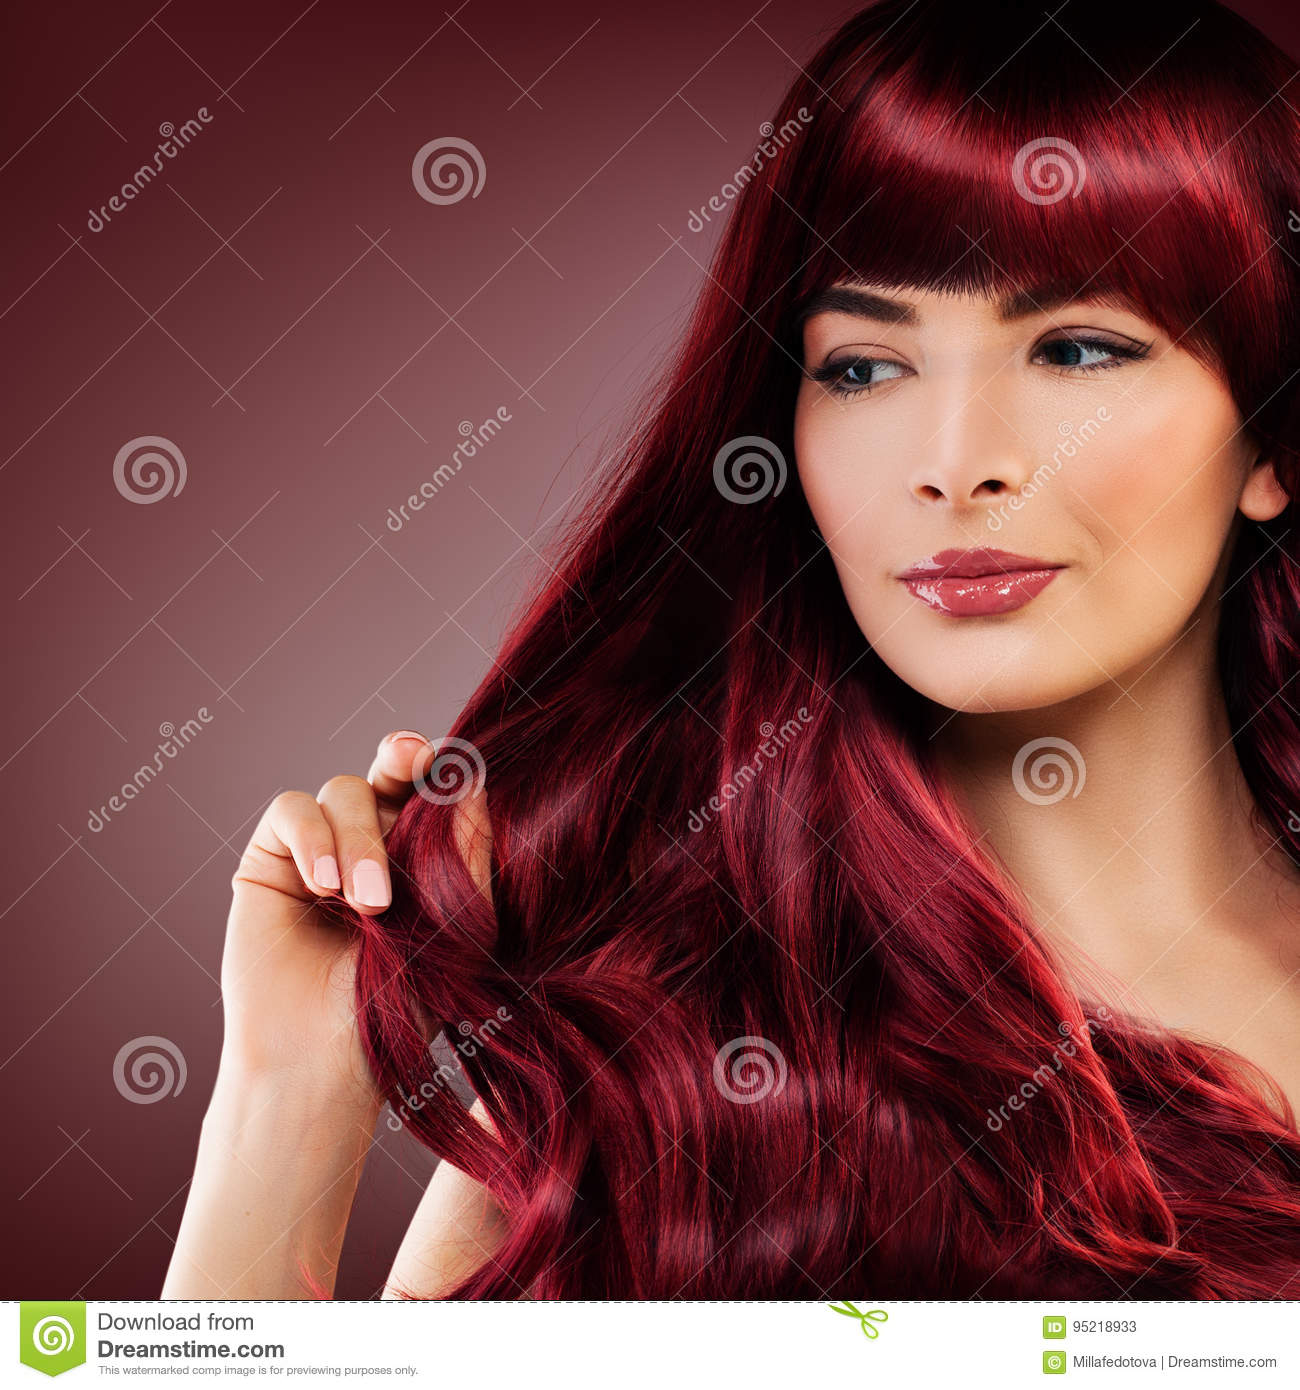 Cute Redhead Woman With Red Hairstyle Girl With Redhead Curly Stock